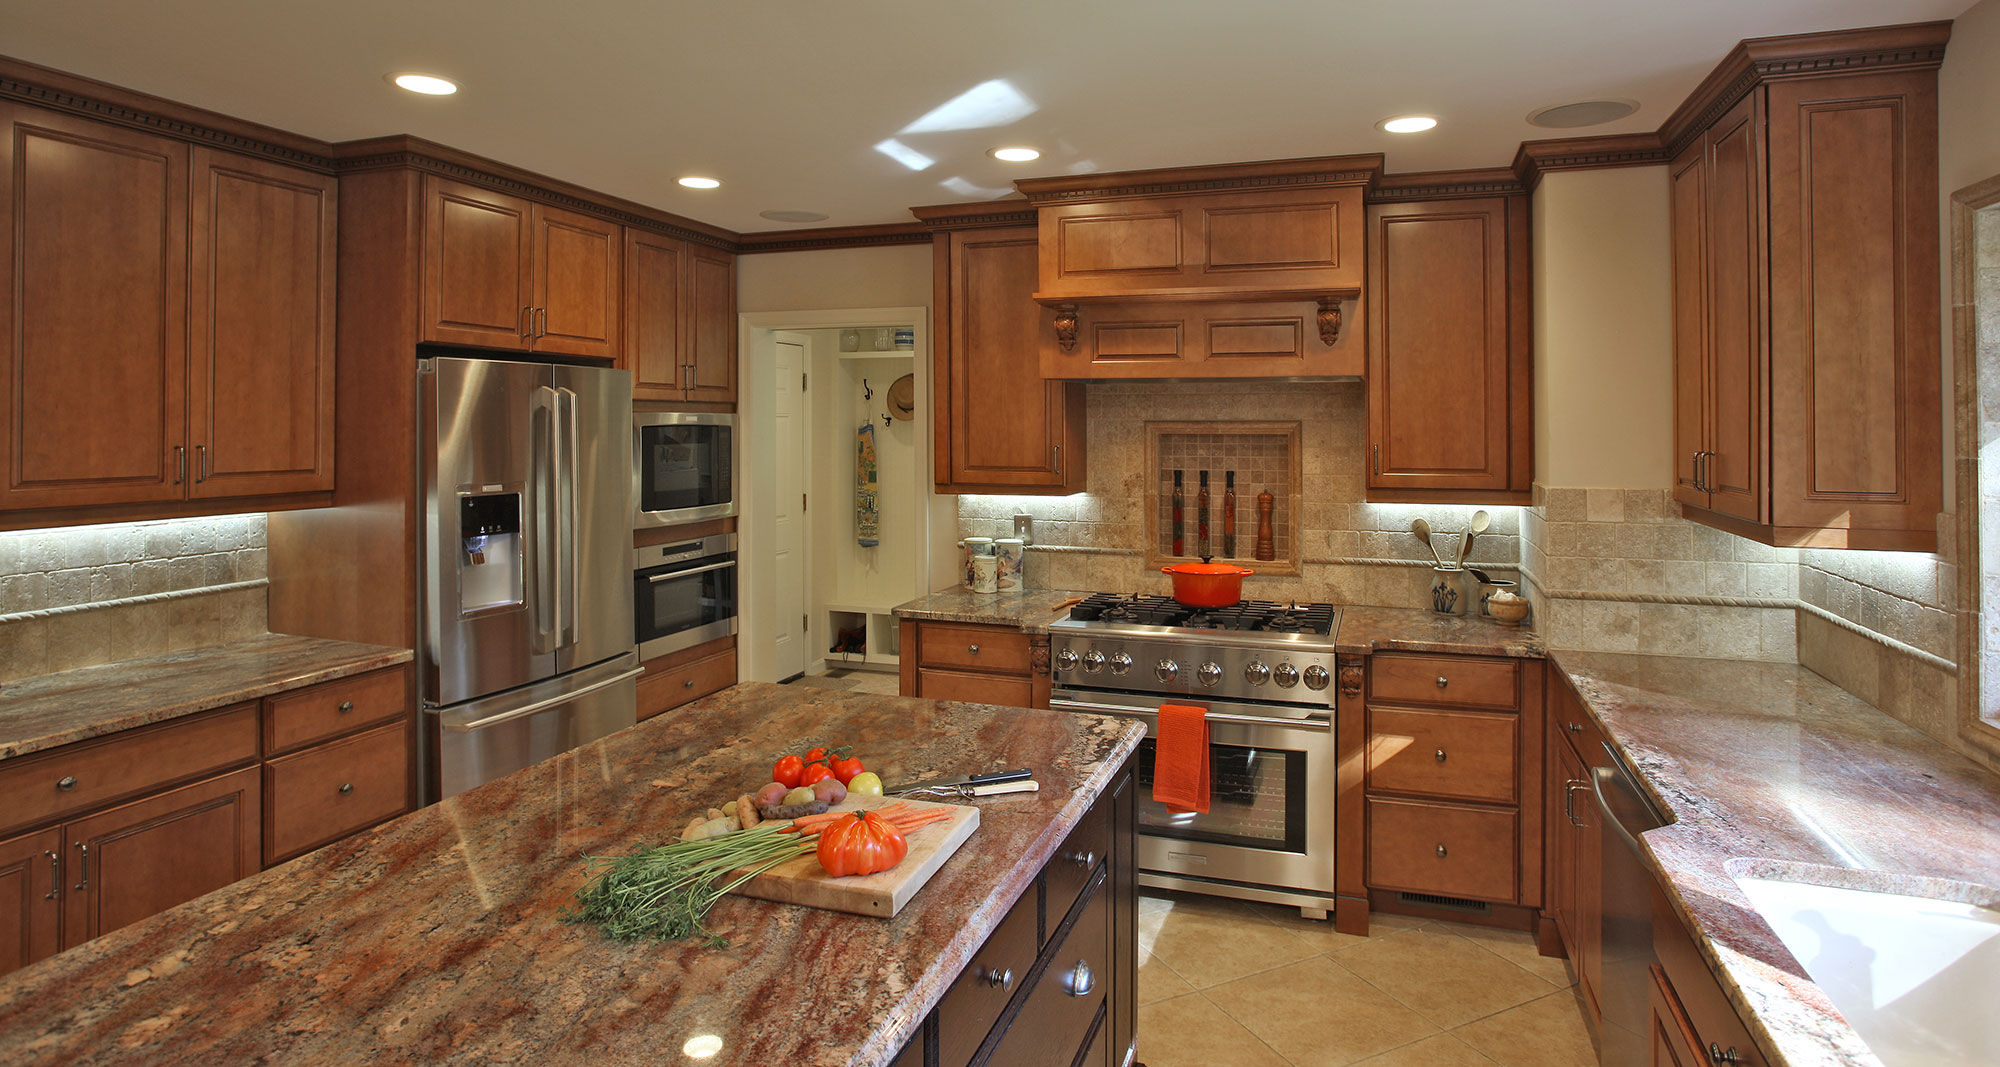 Kitchen Remodeling Fairfax Va Property Extraordinary Kitchen And Bath Remodeling Serving Northern Virginia Maryland . Inspiration